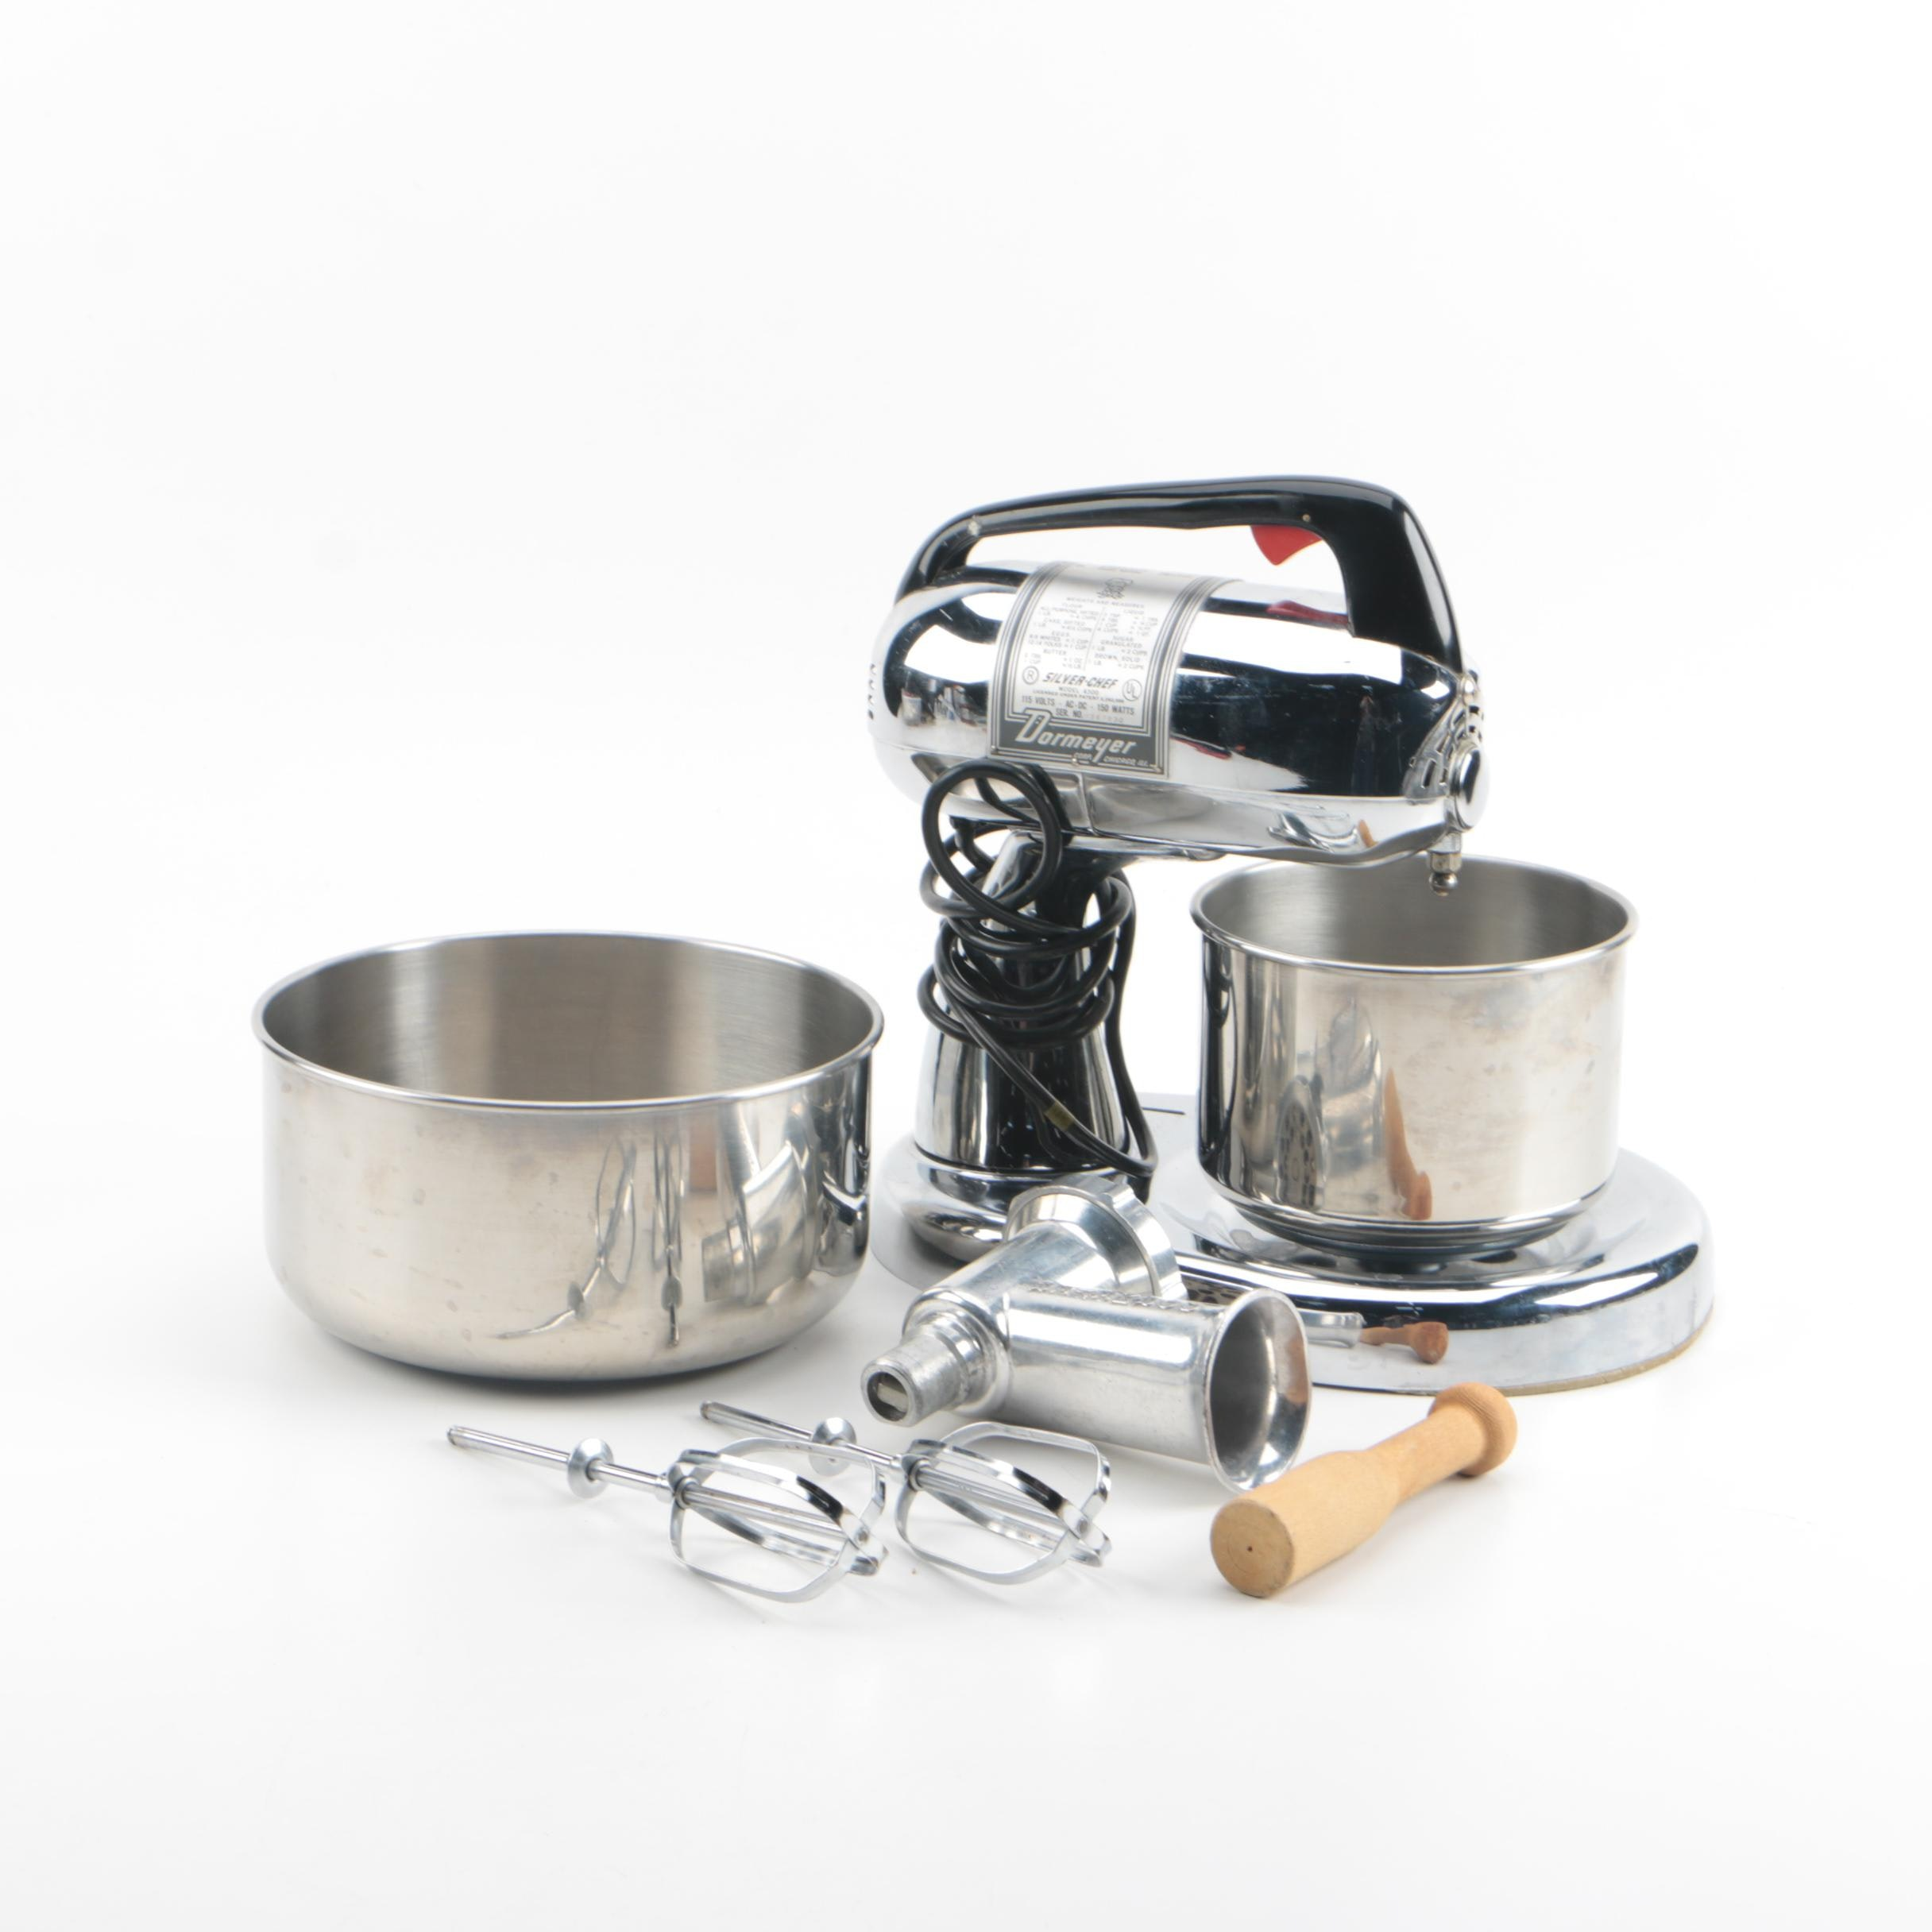 """Dormeyer """"Silver-Chef"""" Electric Mixer with Accessories"""